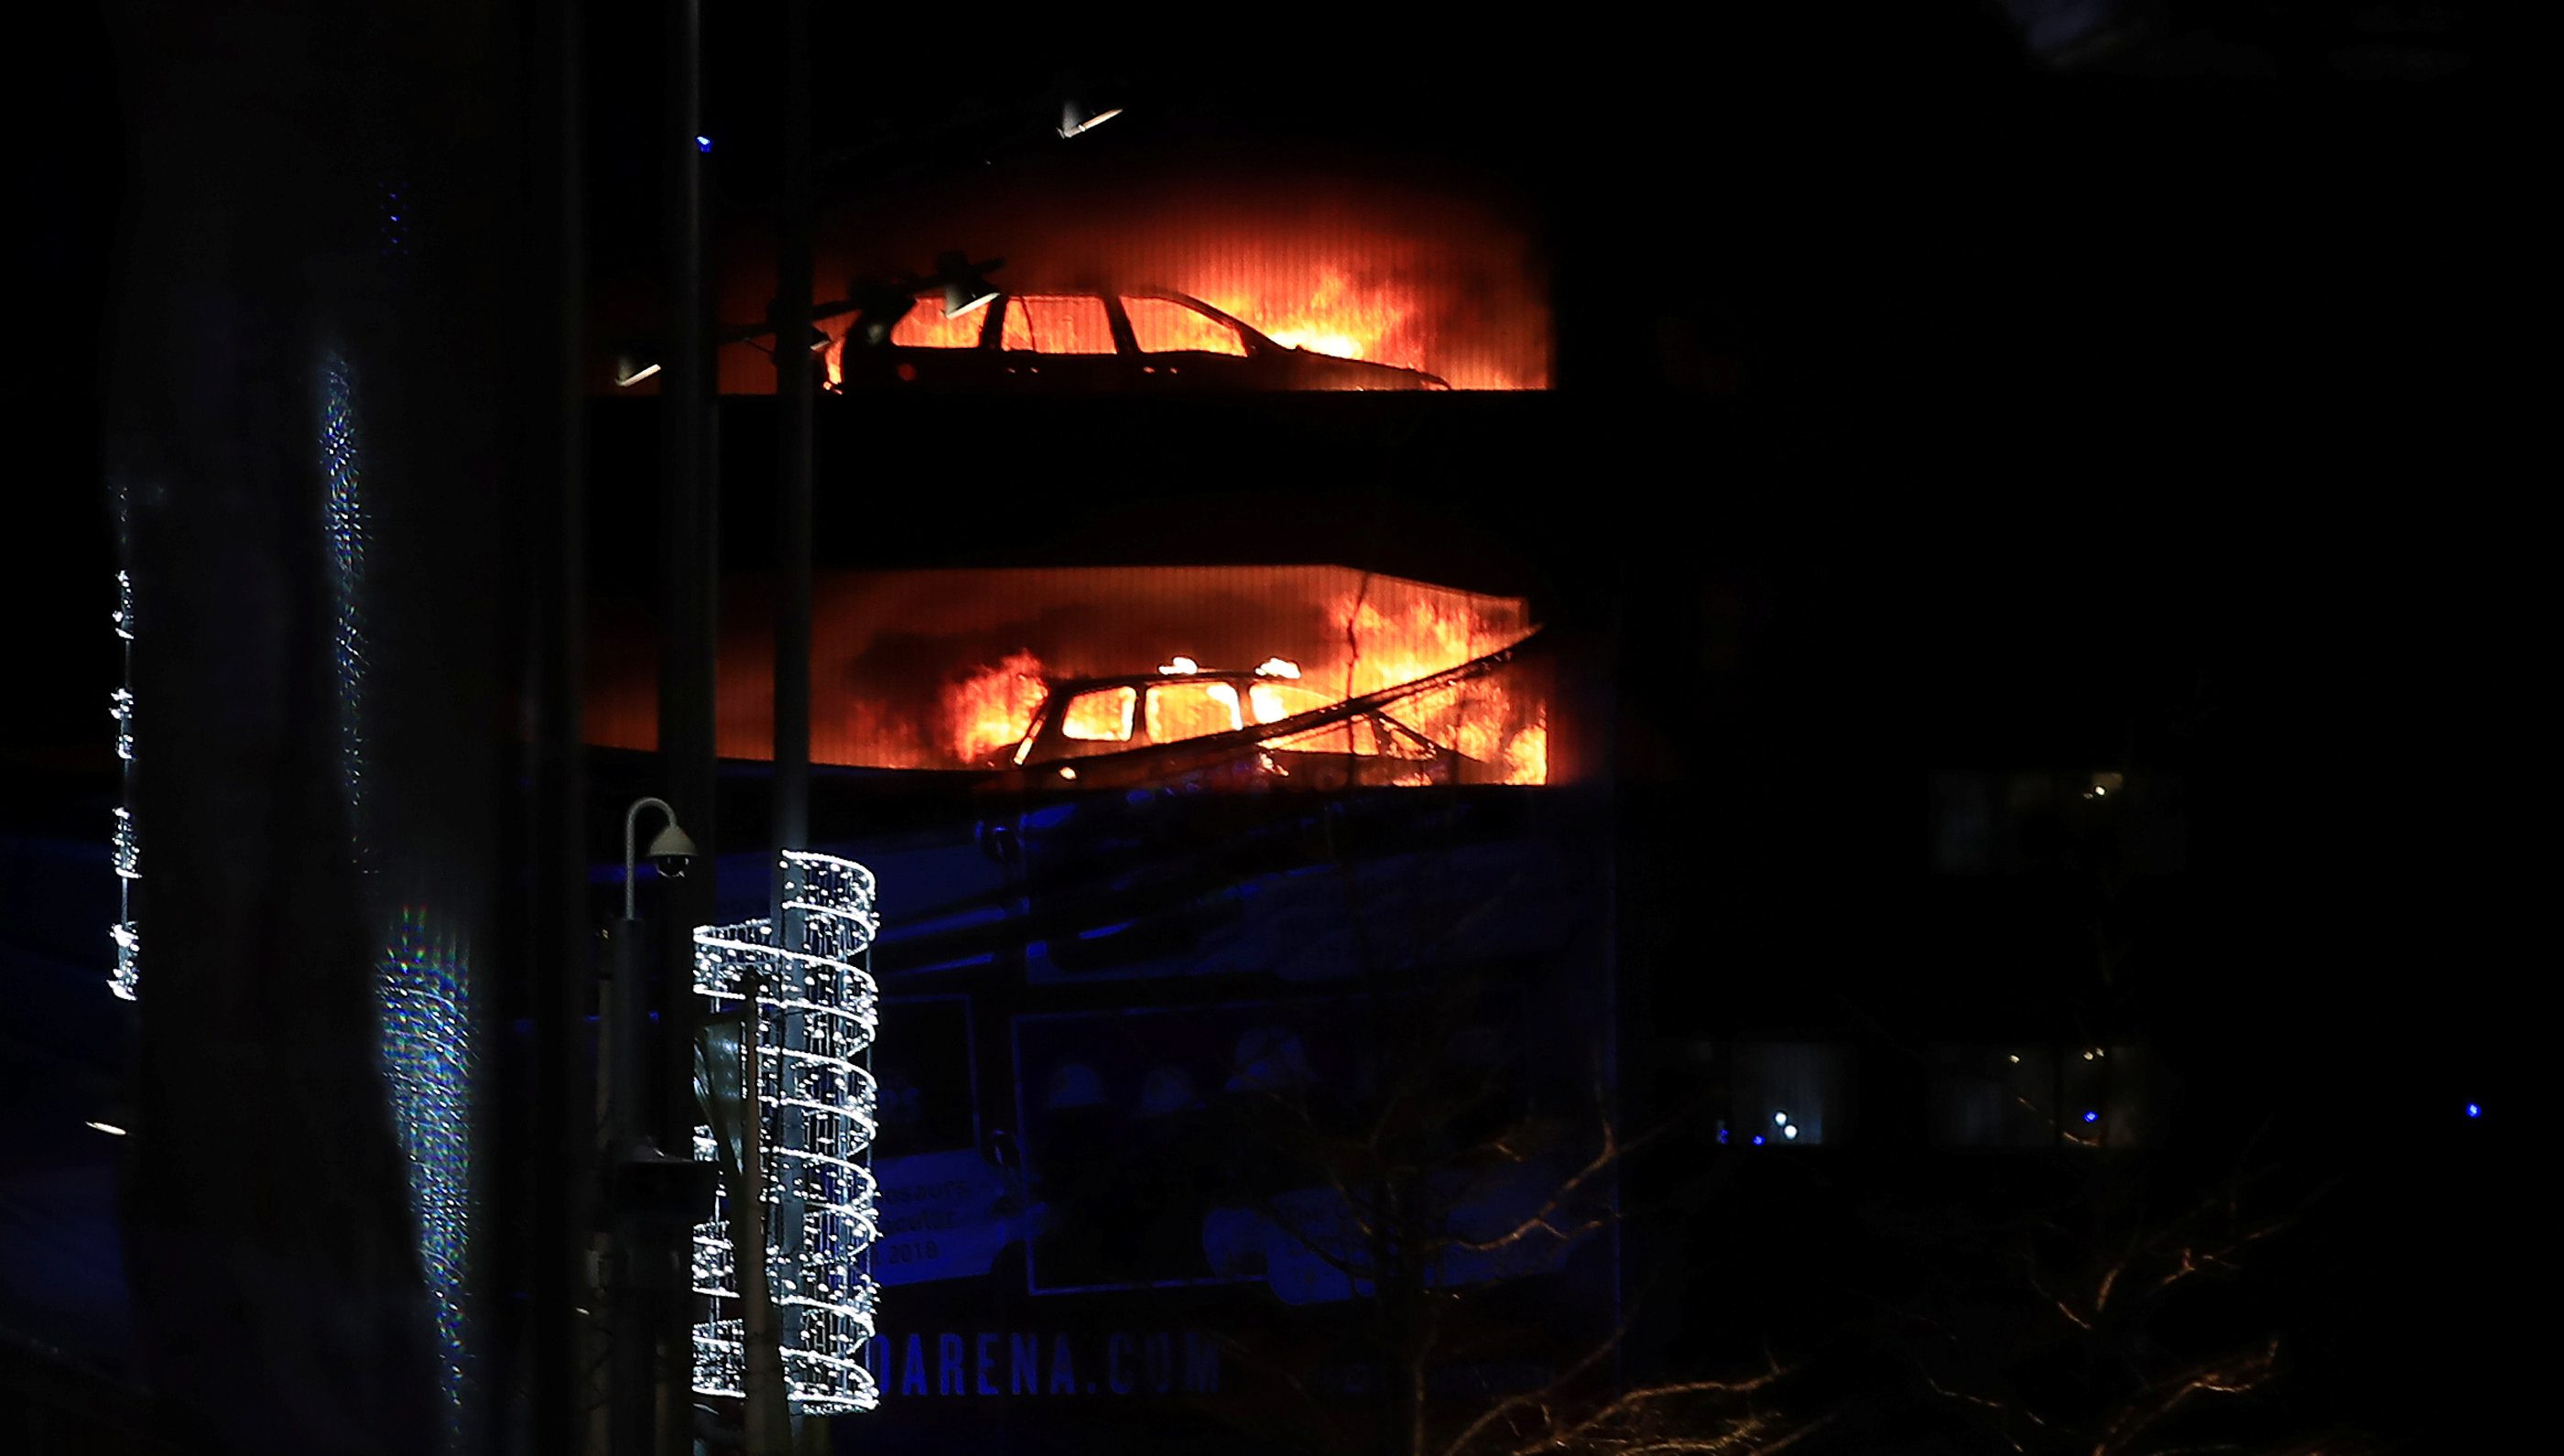 Cars are seen on fire during a serious blaze in a multi-storey car park in Liverpool, Britain, December 31, 2017. REUTERS/Phil Noble